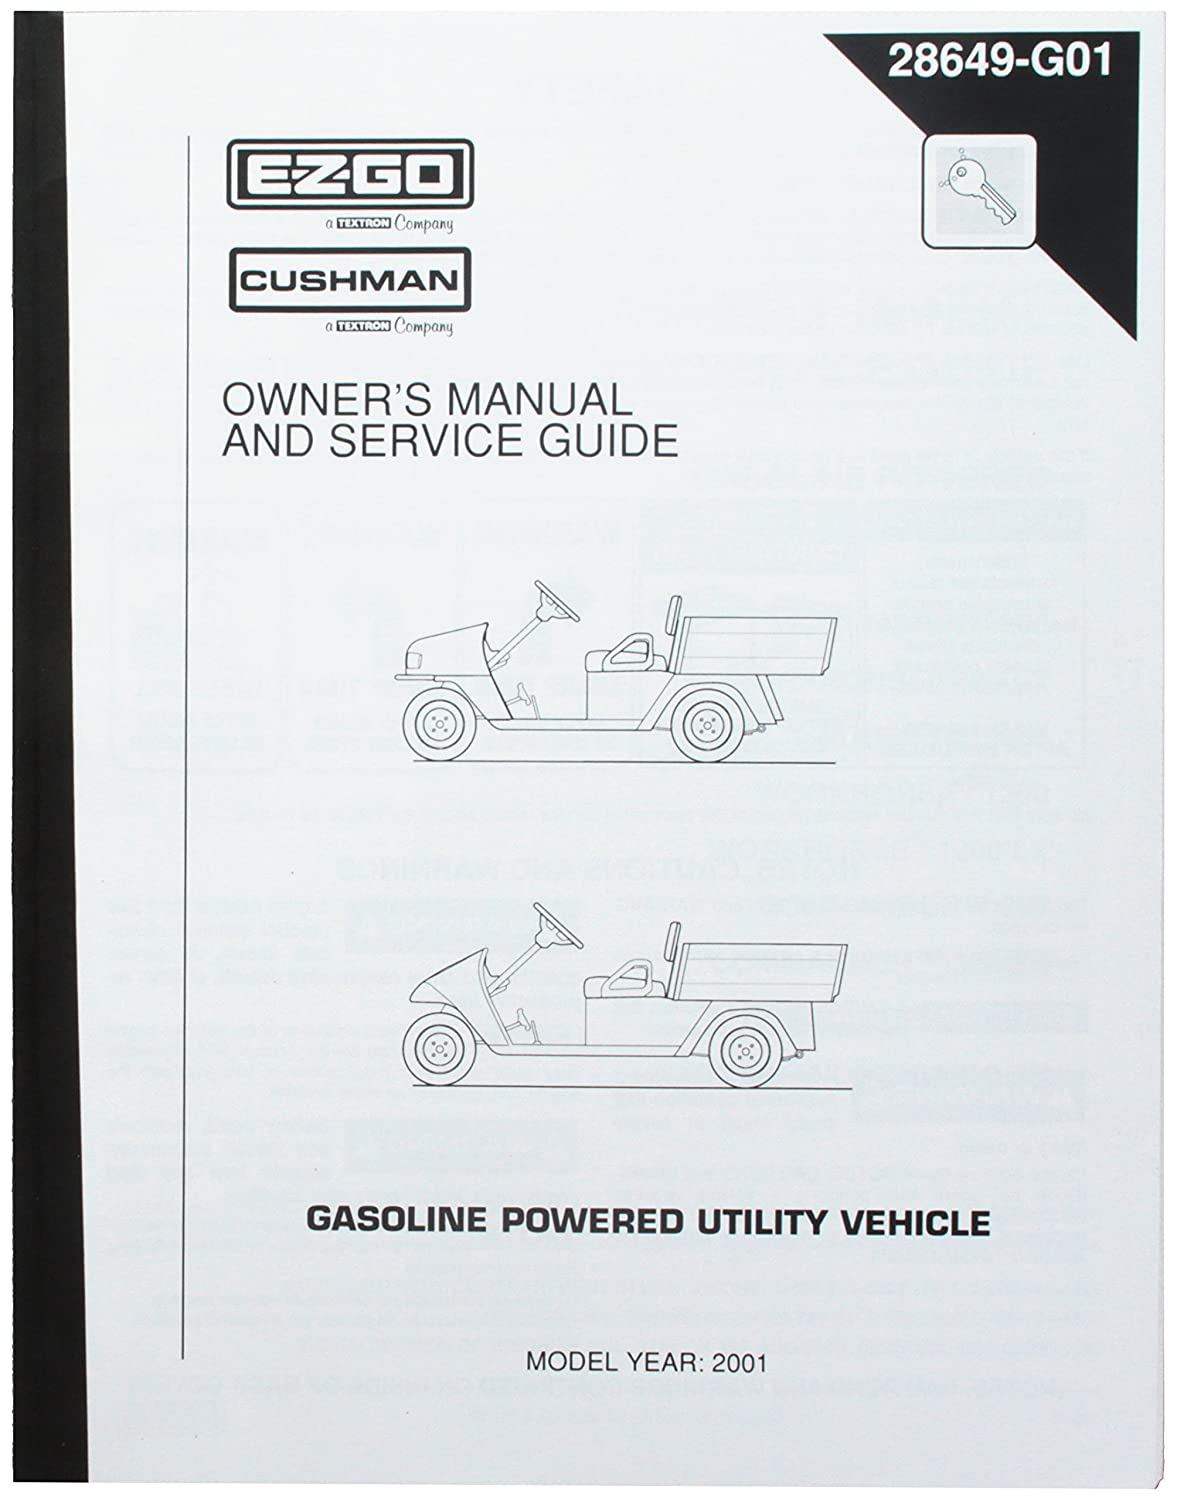 Amazon.com : EZGO 28649G01 2001 Owner's Manual and Service Guide Cushman  Gas Utility Vehicle : Outdoor Decorative Fences : Garden & Outdoor